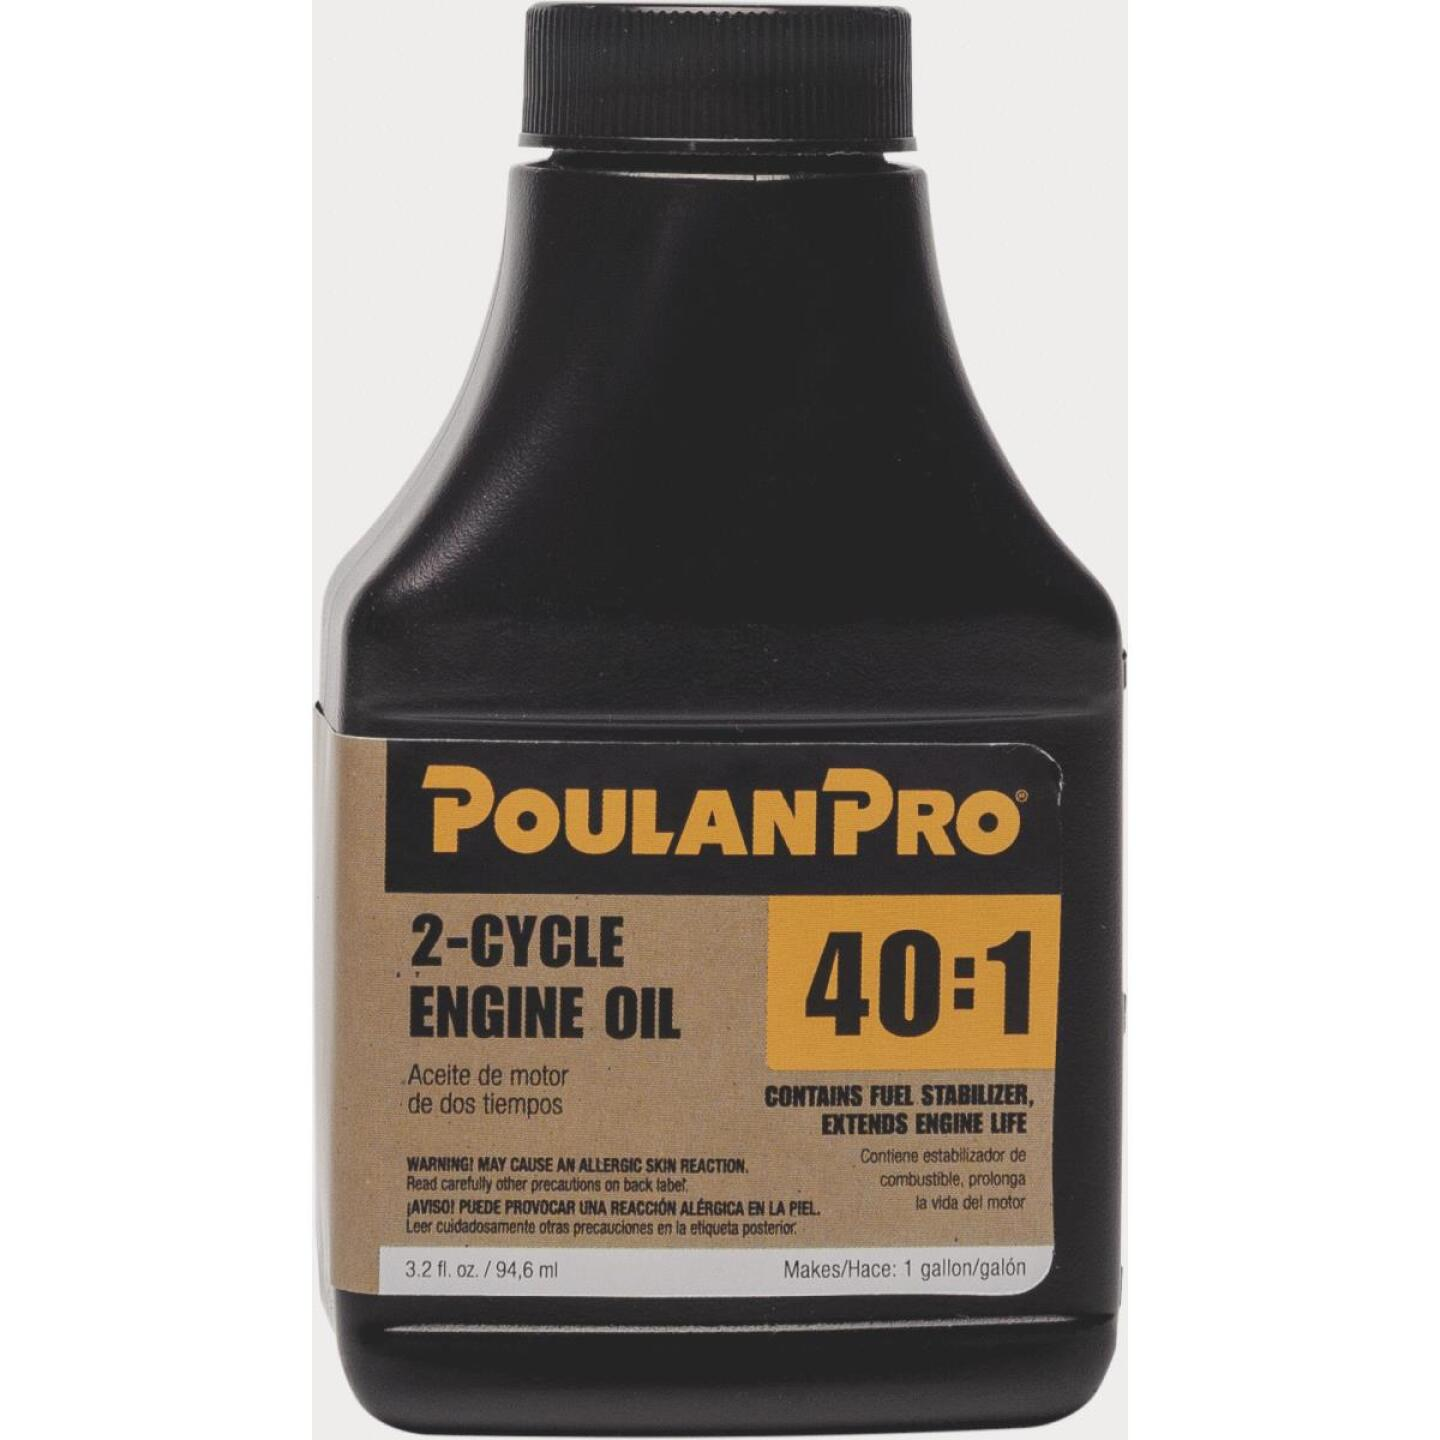 Poulan Pro 3.2 Oz. 2-Cycle Engine Oil Image 1